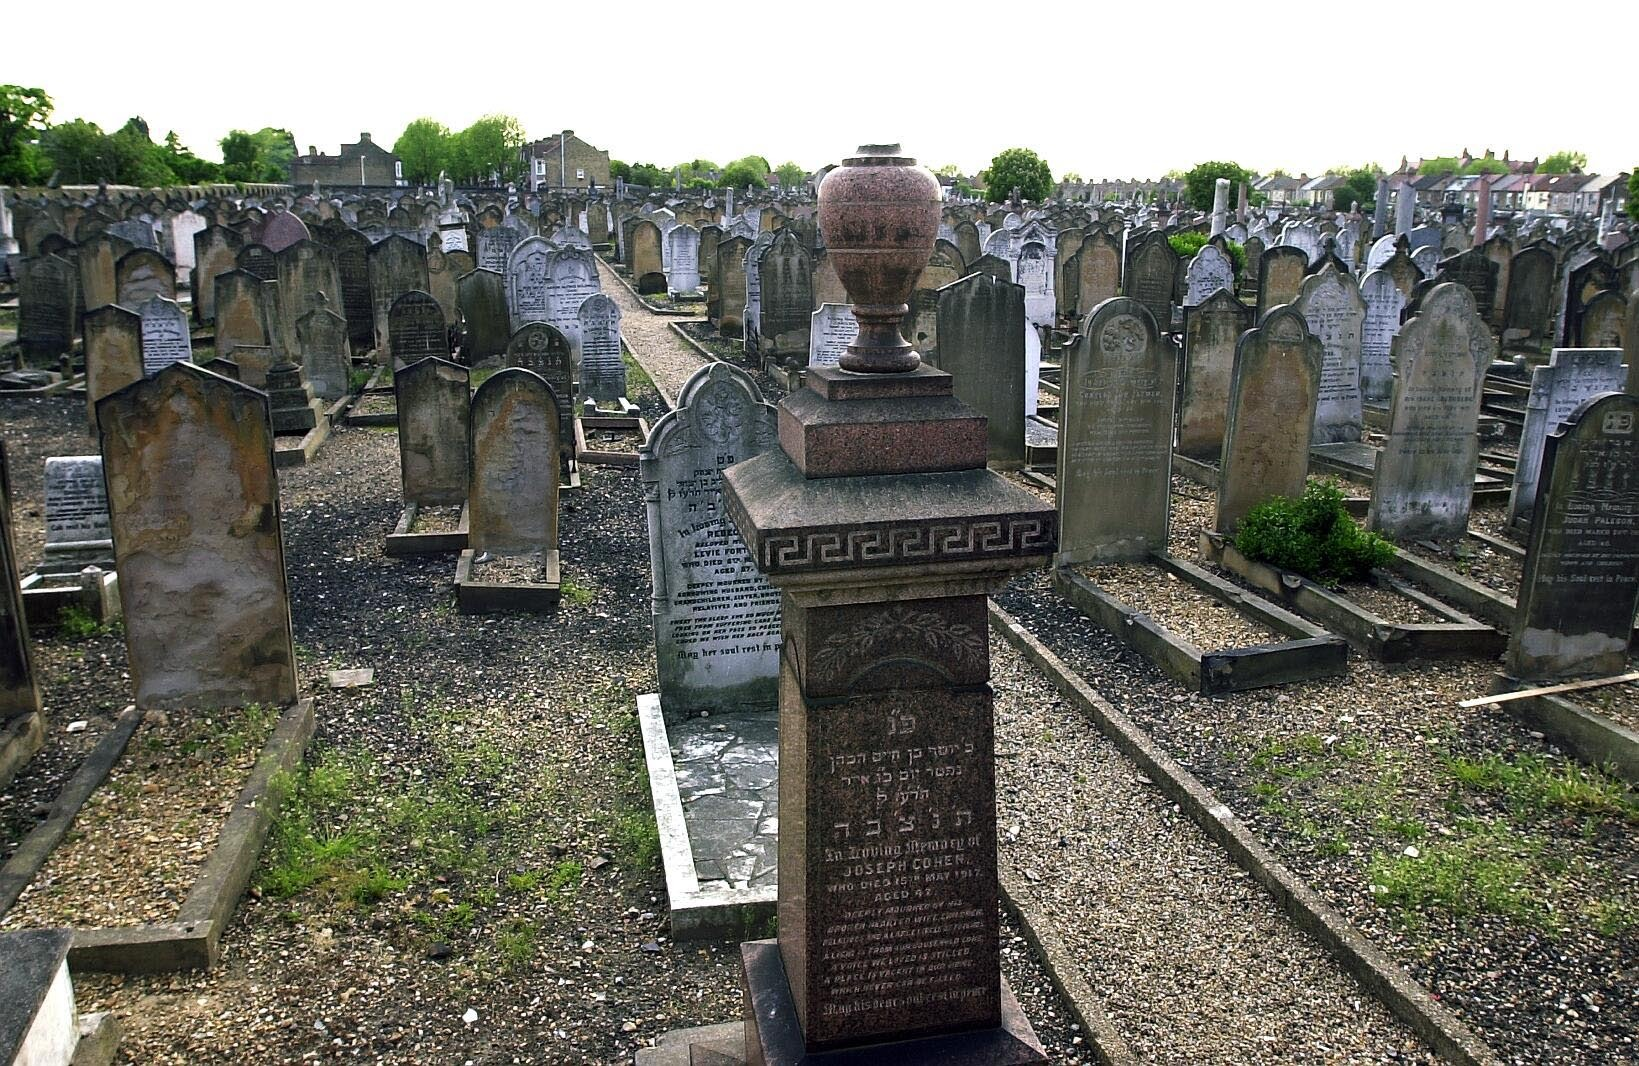 High Court reverses burial policy that angered Jews and Muslims